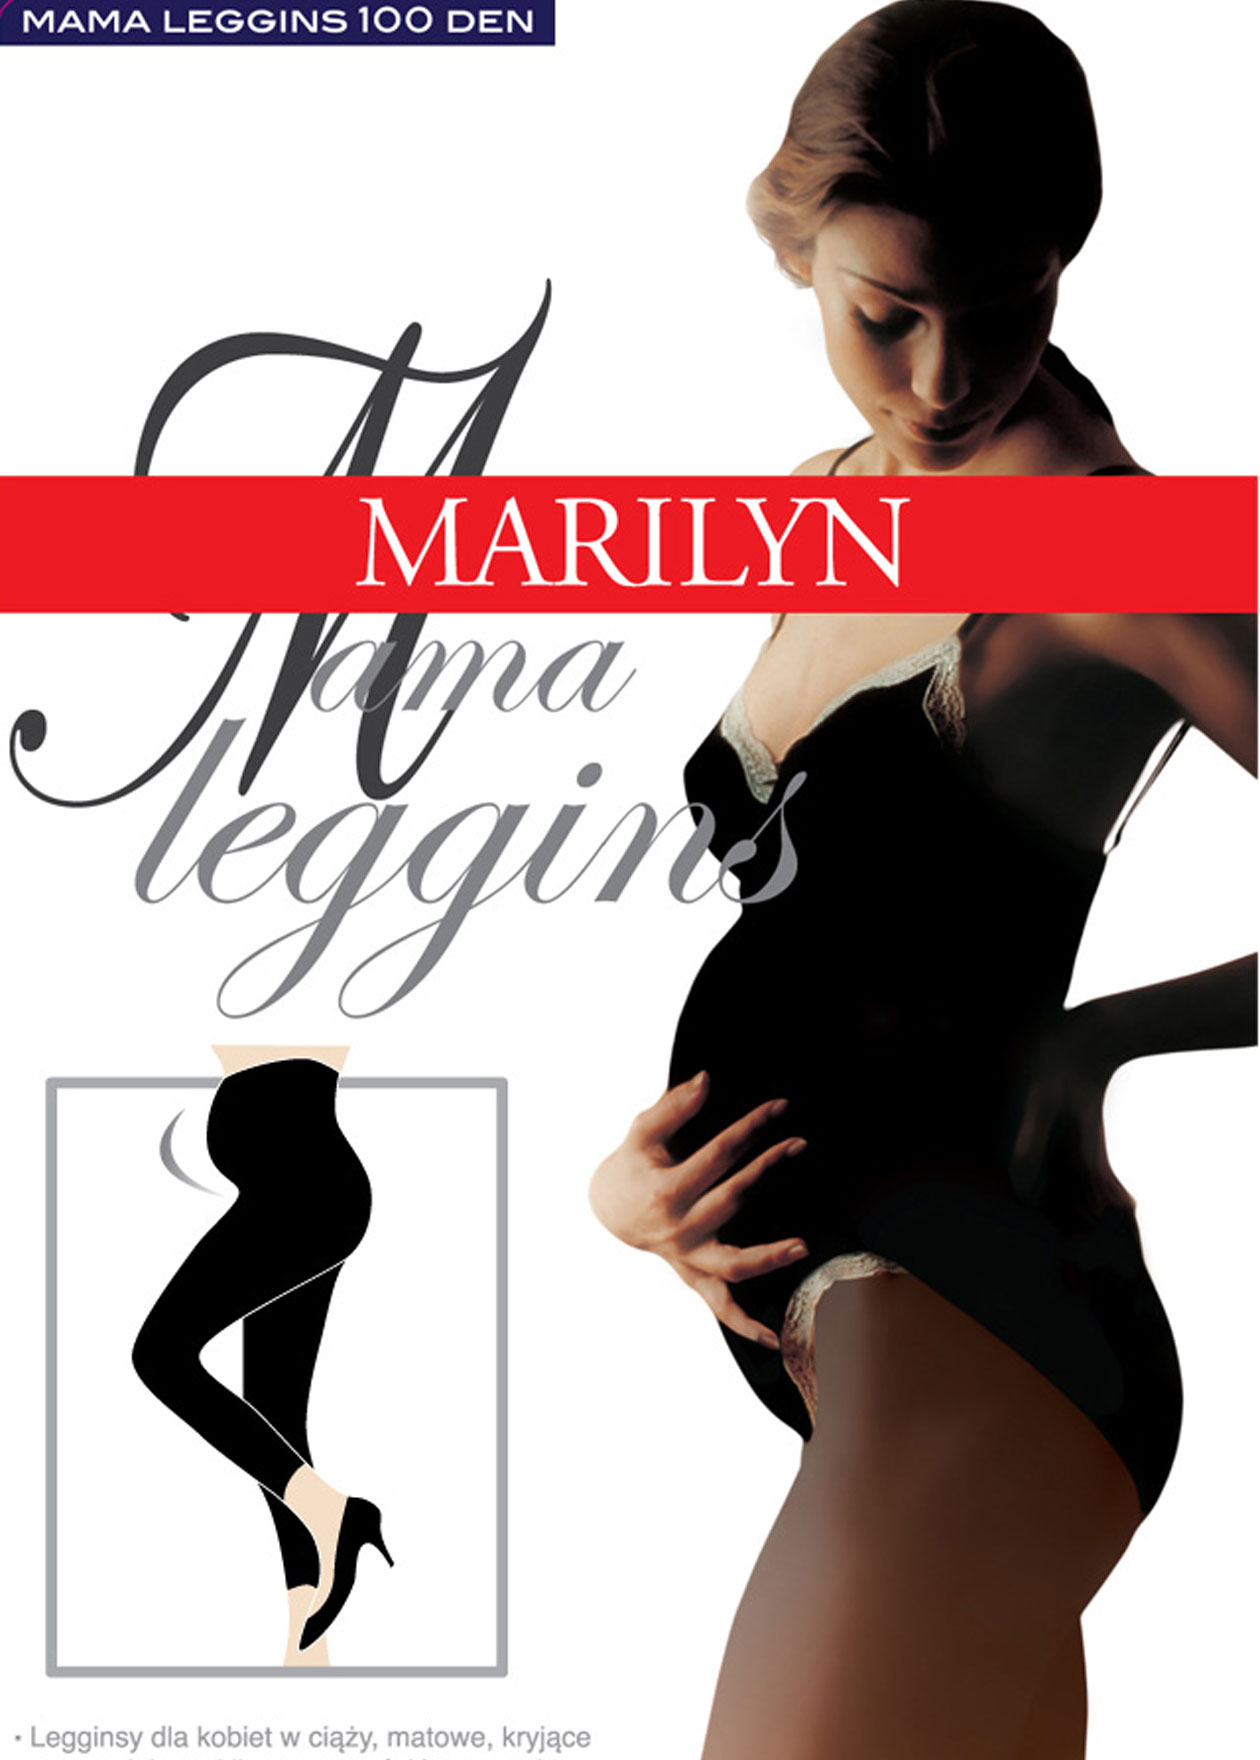 Marilyn Mama 100 Leggins